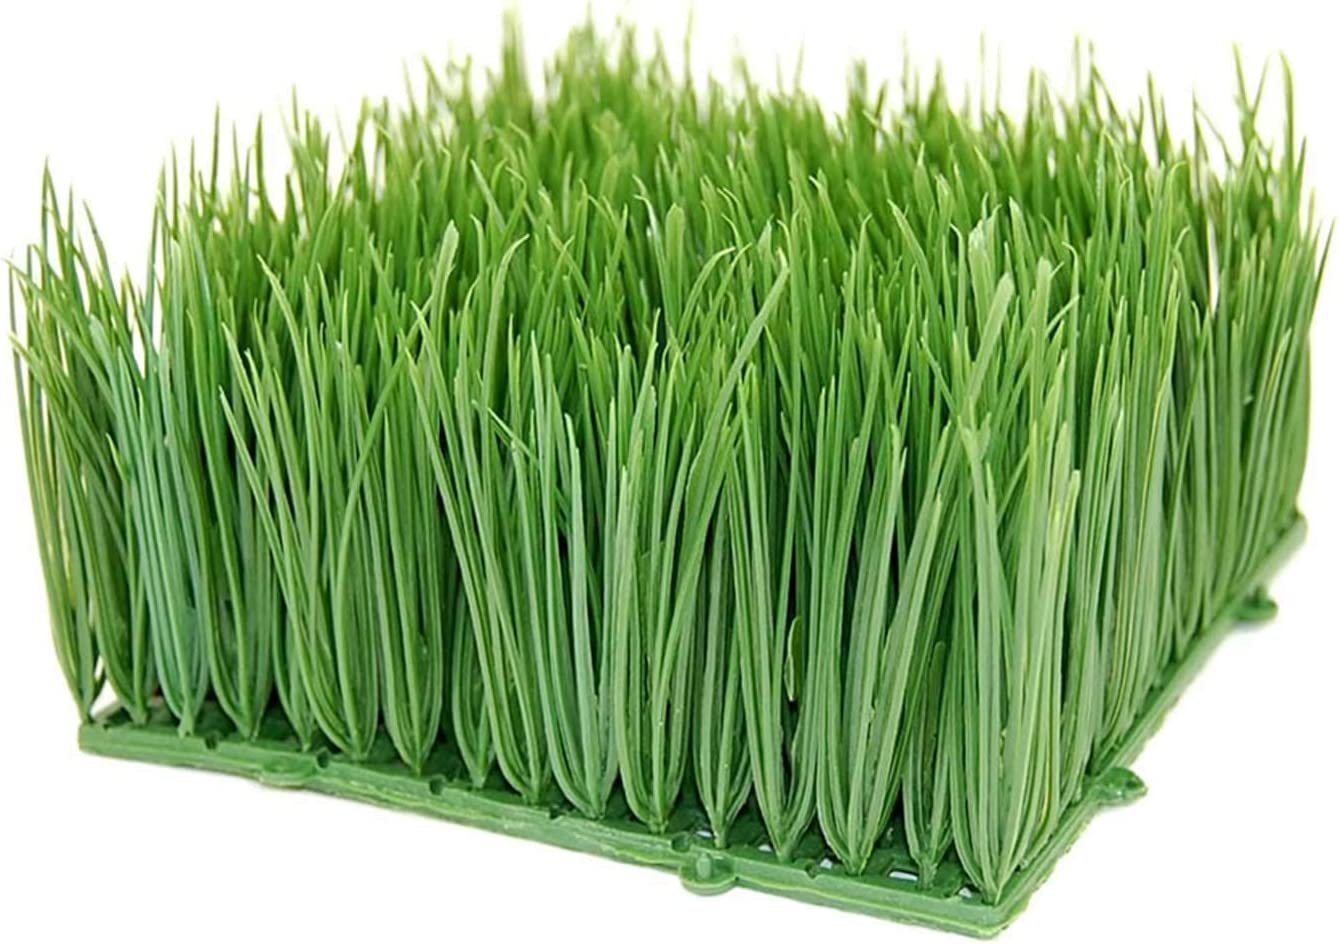 "Handy Pantry Large Artificial Wheat Grass | Artificial Wheatgrass for Home Decor, Office Decor, Kitchen Decor | Fake Plants for Decoration, Faux Wheat Grass (12""x 12""x 4"")"